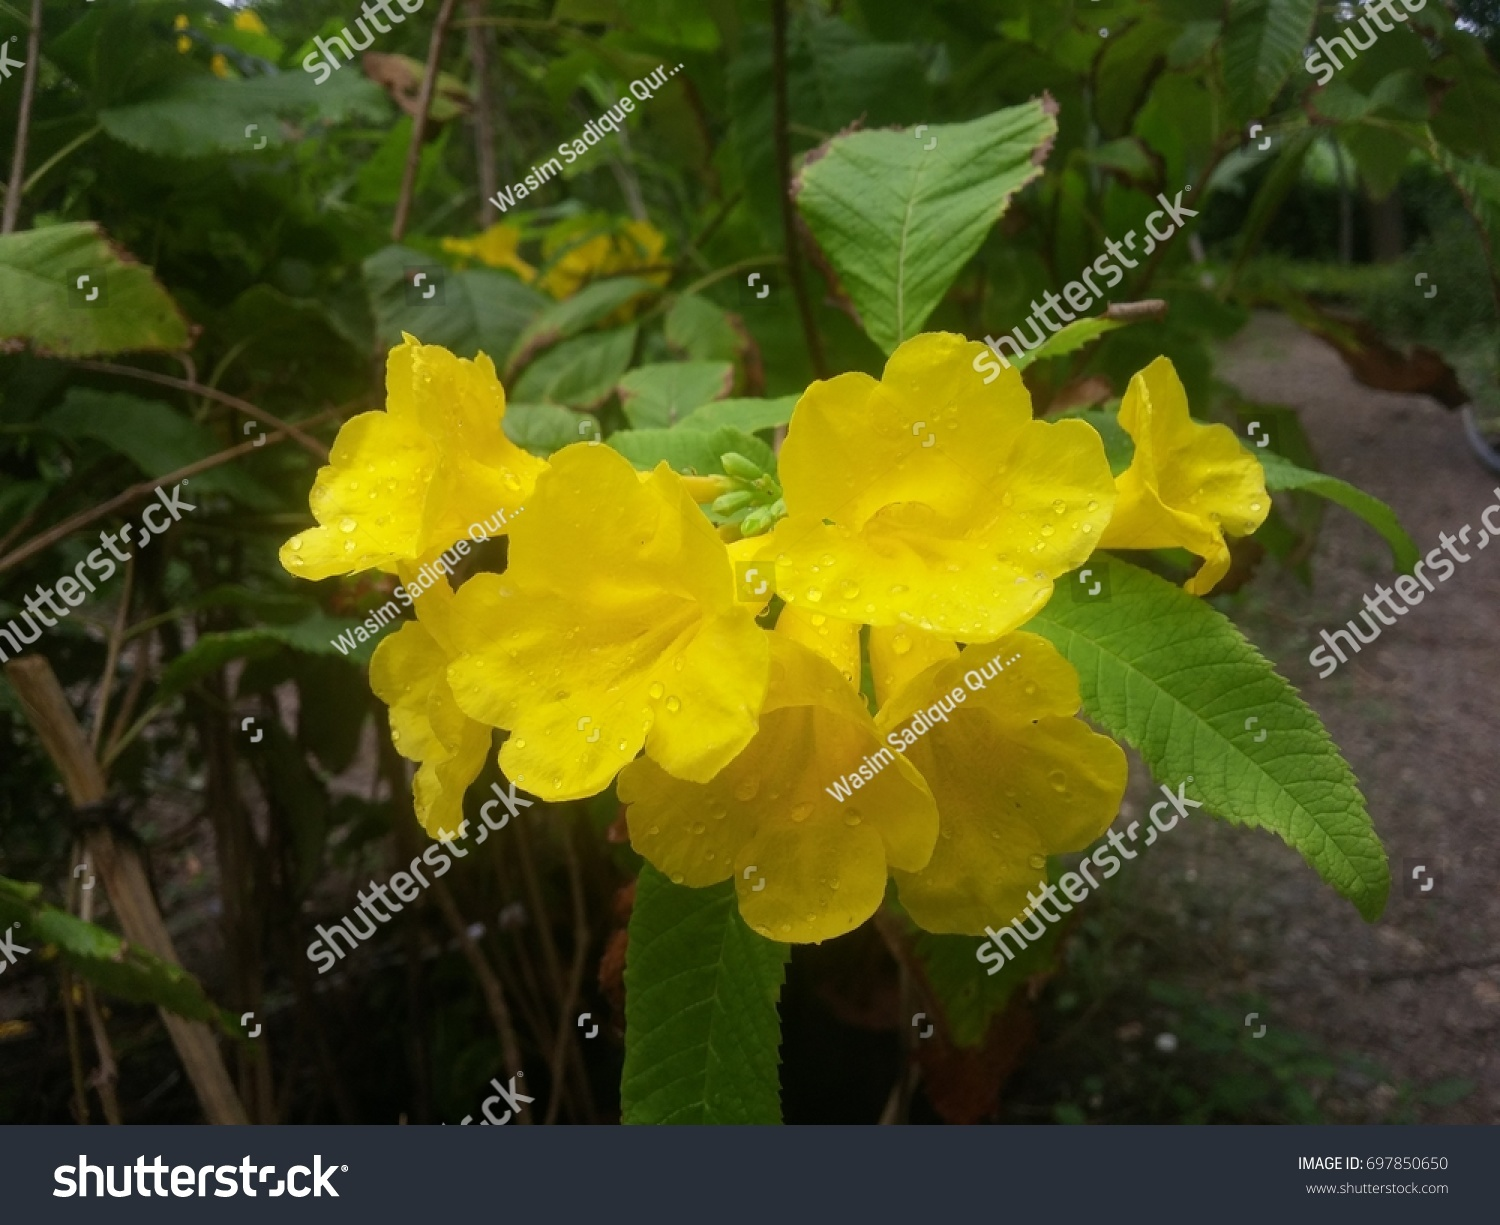 Bermuda Butter Cup Flowers Stock Photo Royalty Free 697850650